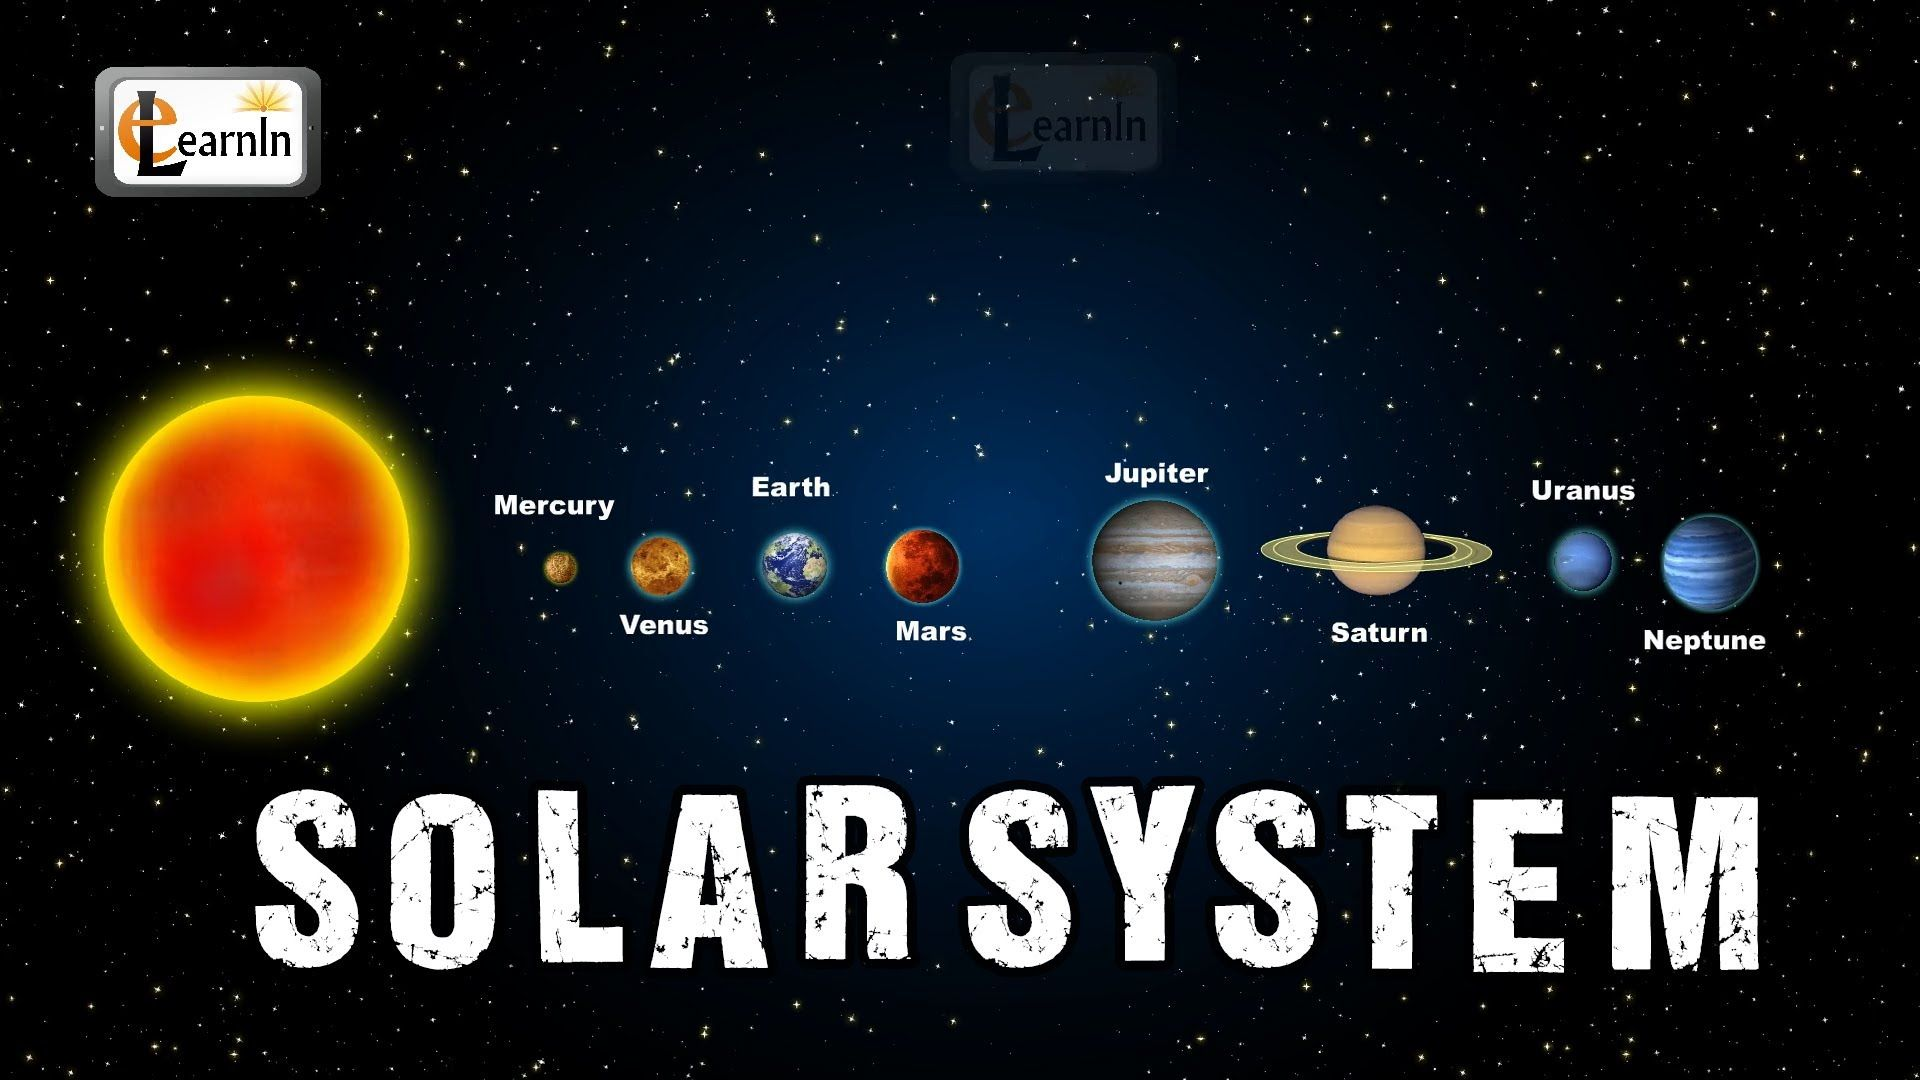 Planets in our solar system | Sun and solar system | Solar